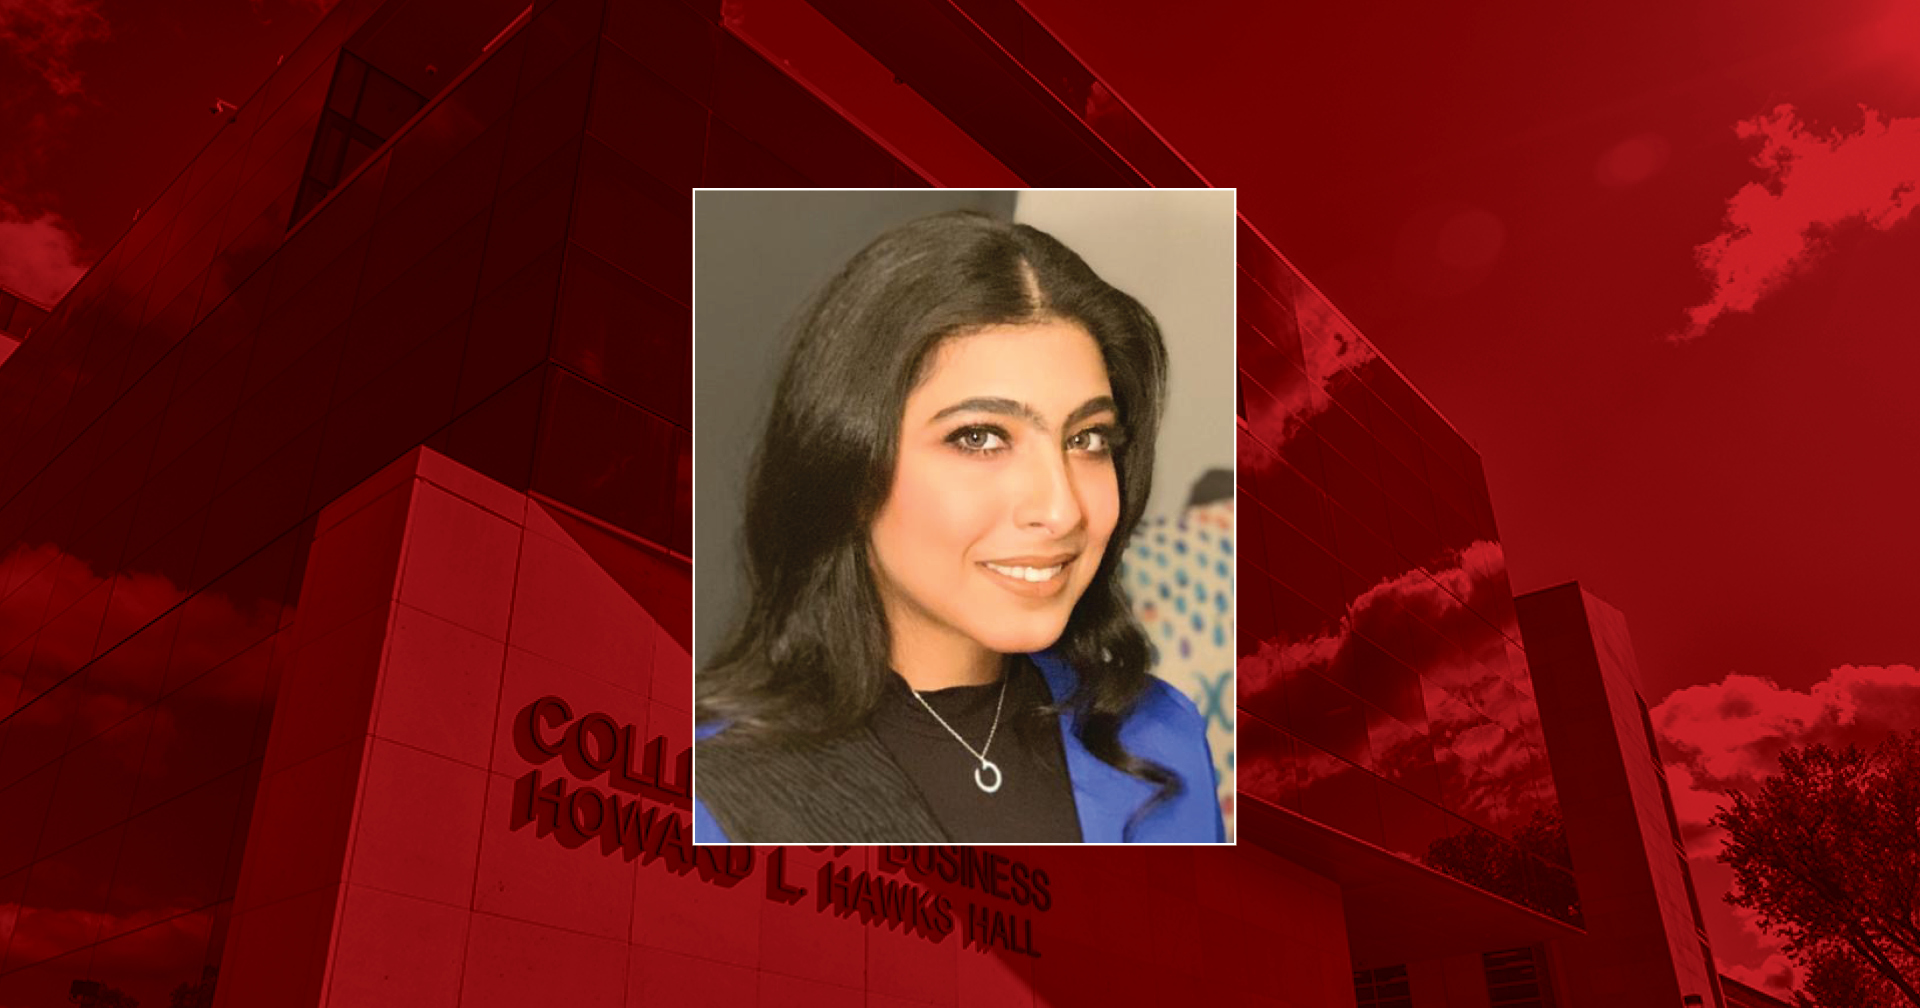 From Oman to Lincoln, Graduate Finds Home At Nebraska